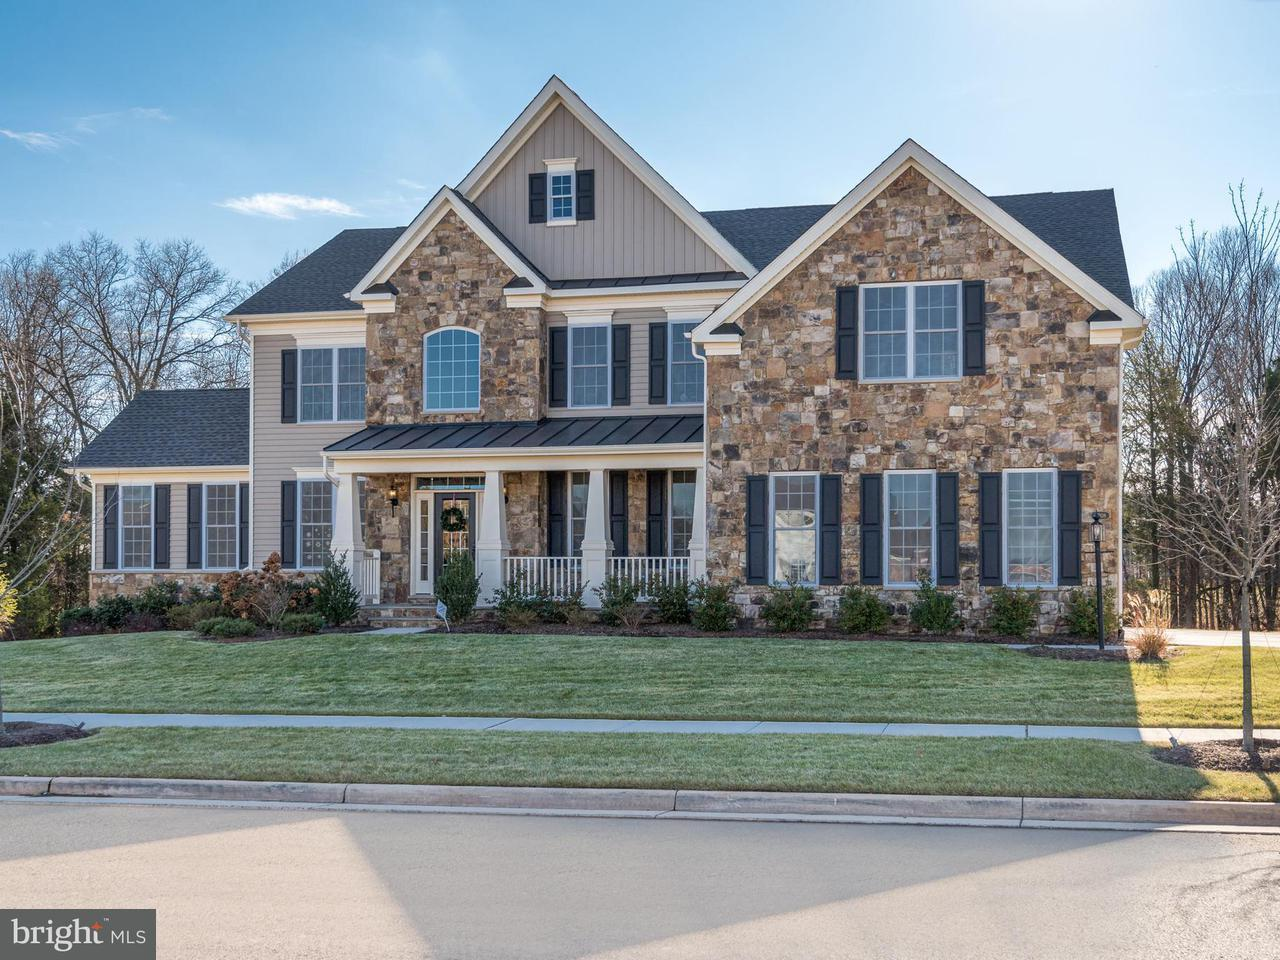 Single Family Home for Sale at 41308 LAVENDER BREEZE Circle 41308 LAVENDER BREEZE Circle Aldie, Virginia 20105 United States